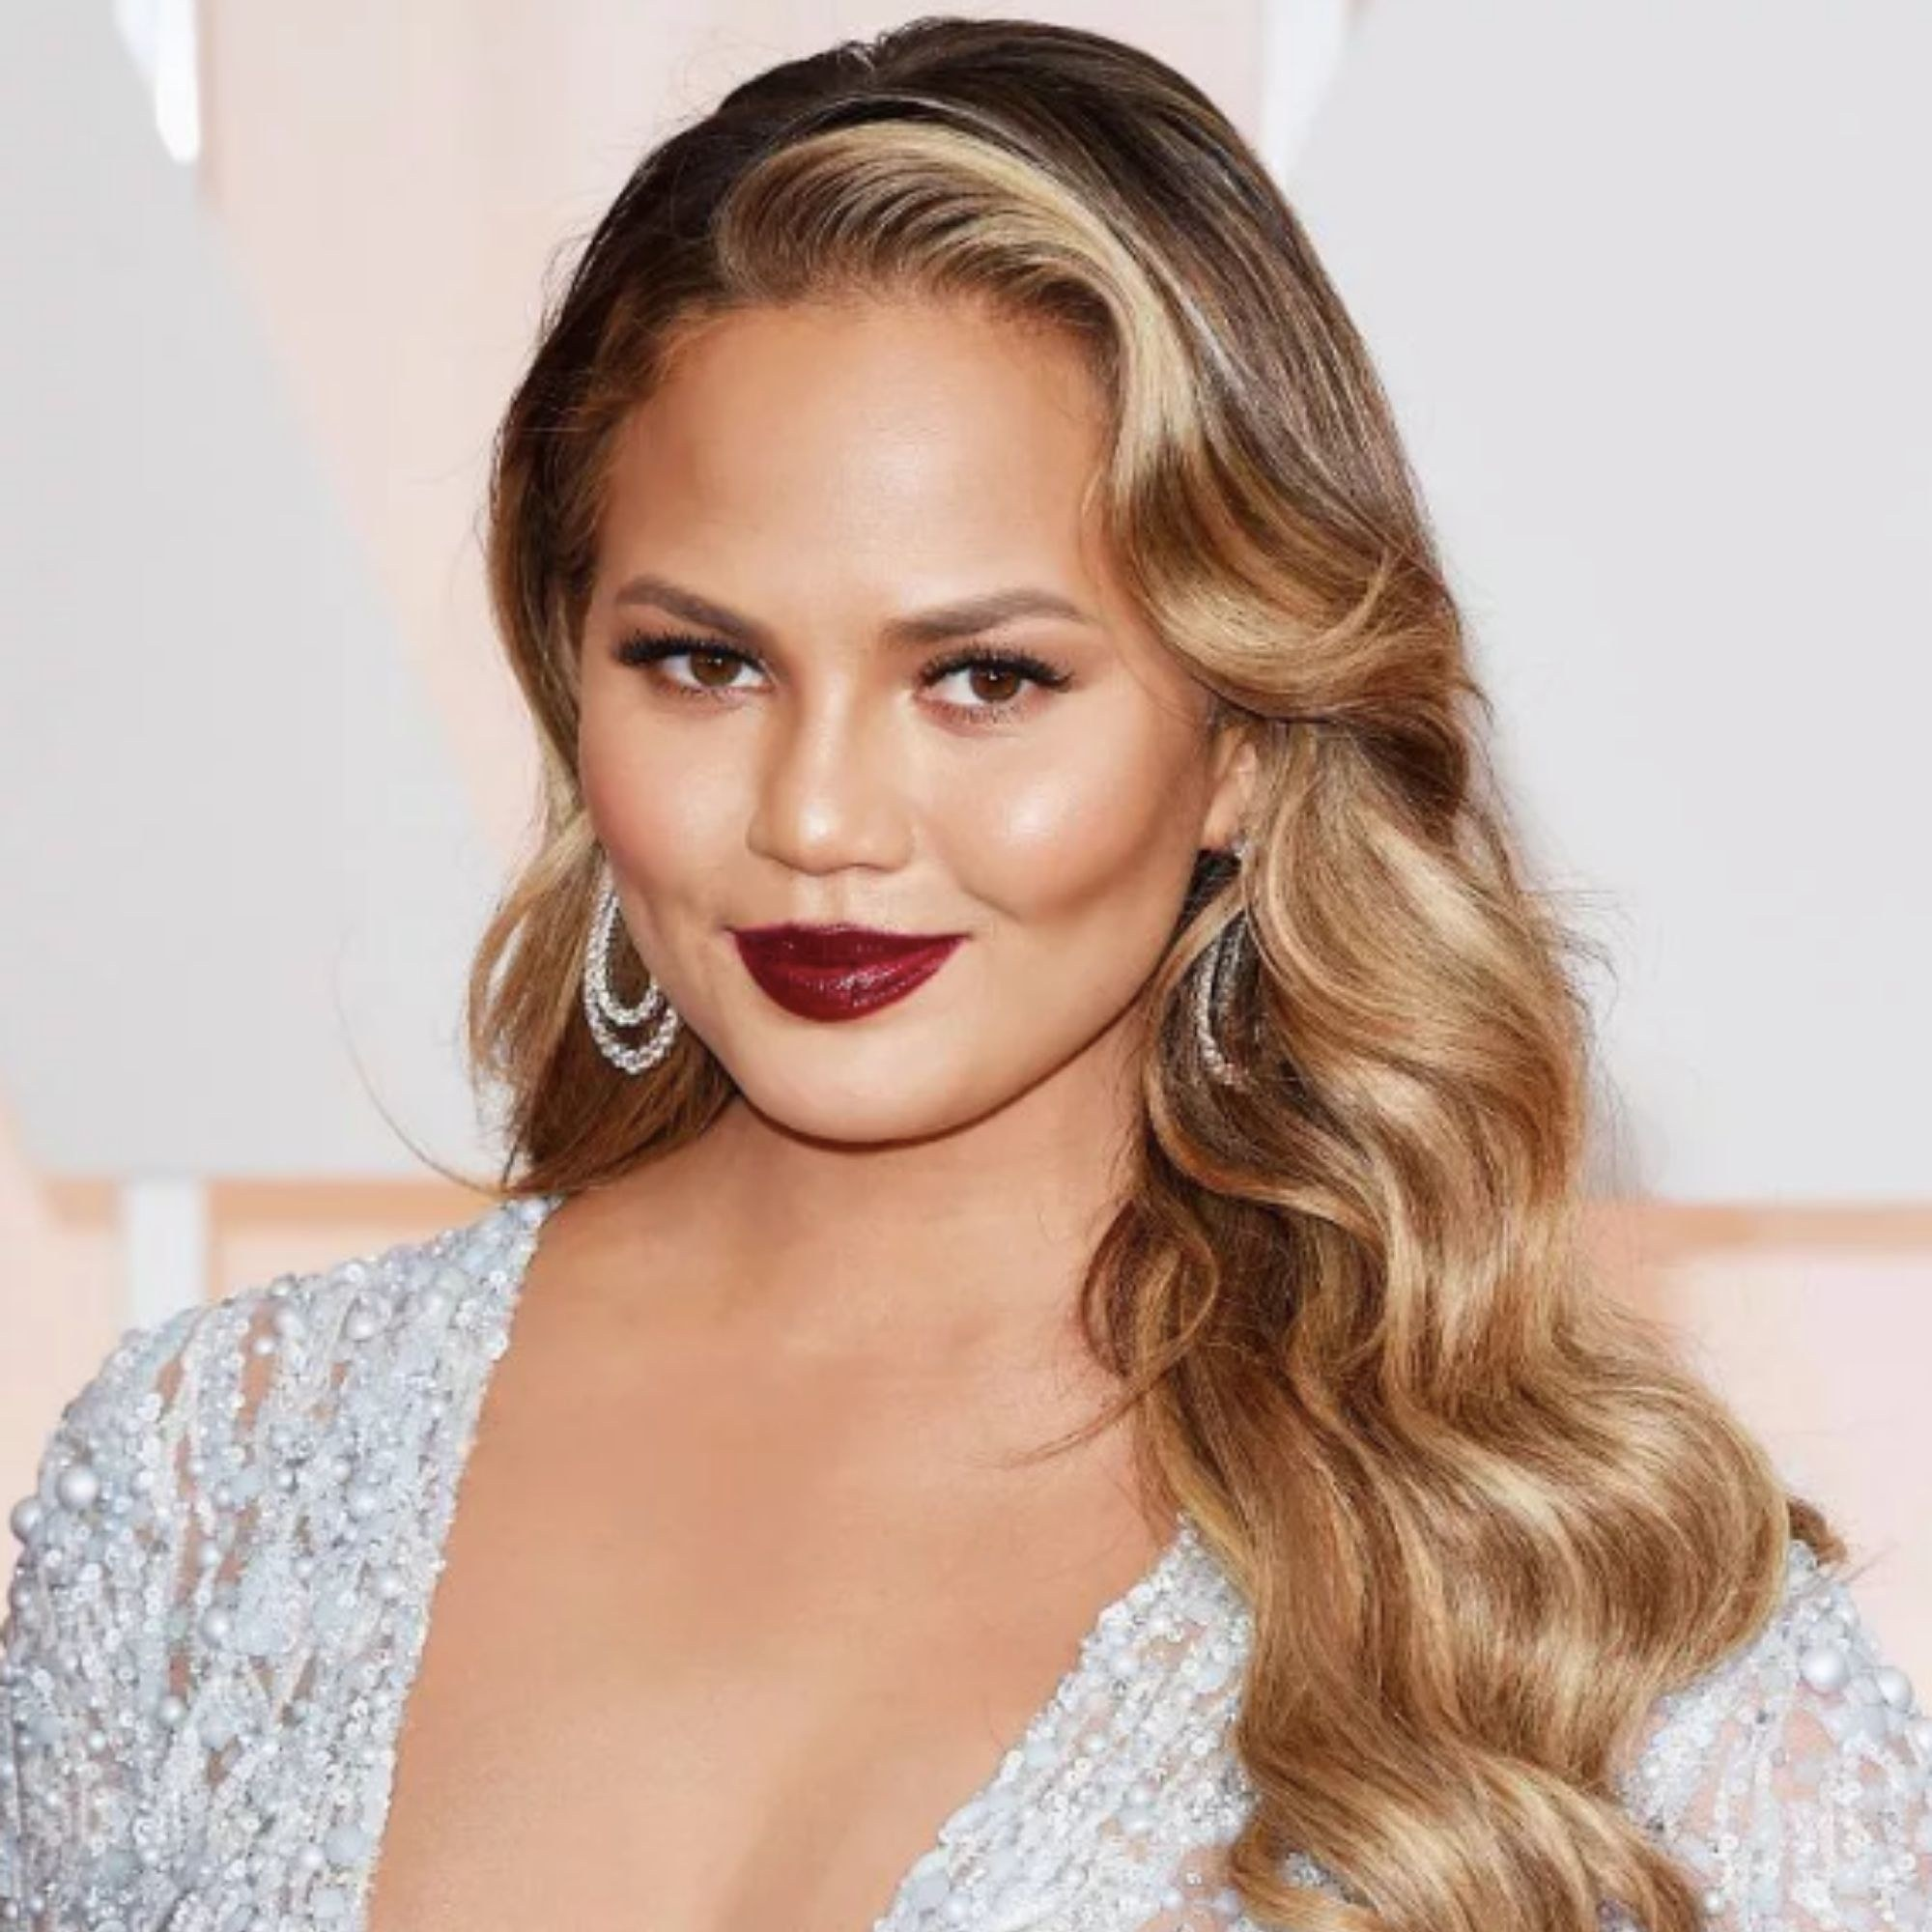 Chrissy Teigen in her bold contrast highlight